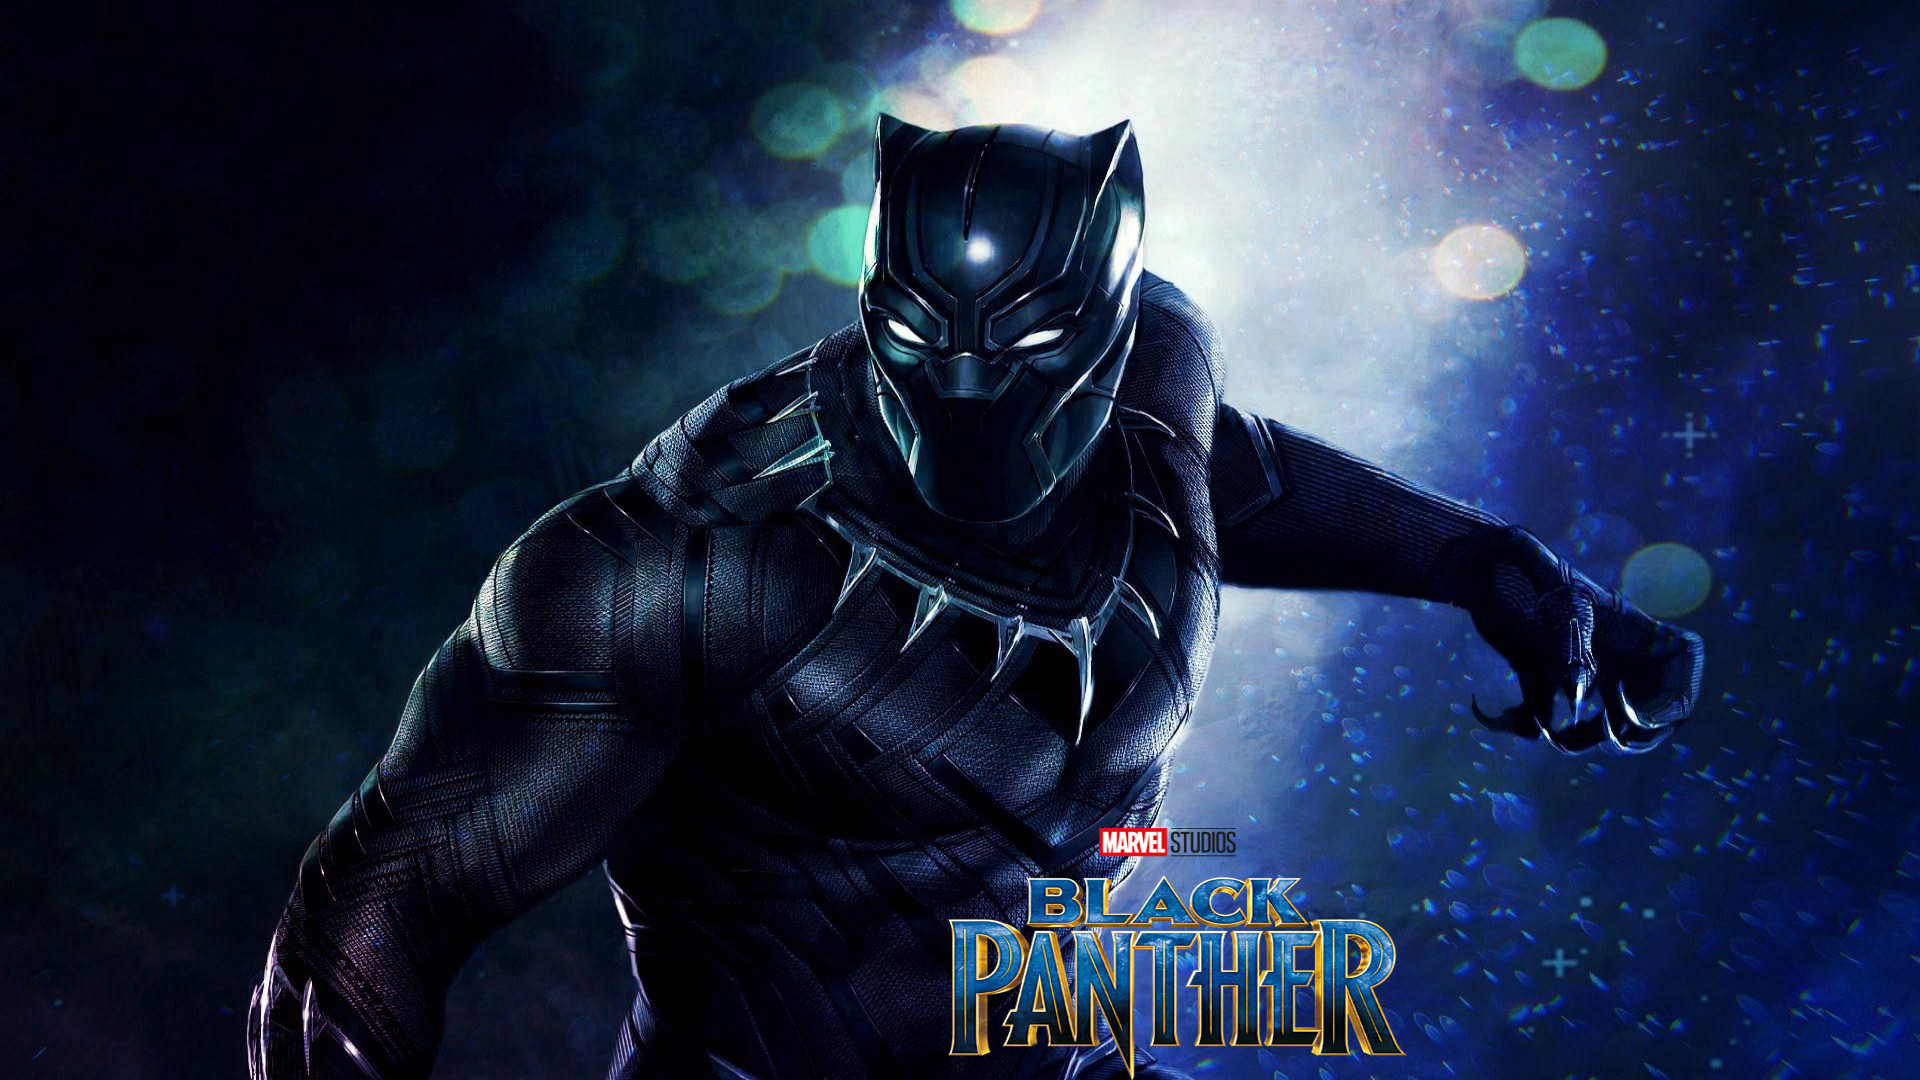 Marvel Black Panther Wallpaper Hd: Black Panther Marvel Close Up Picture For Wallpaper